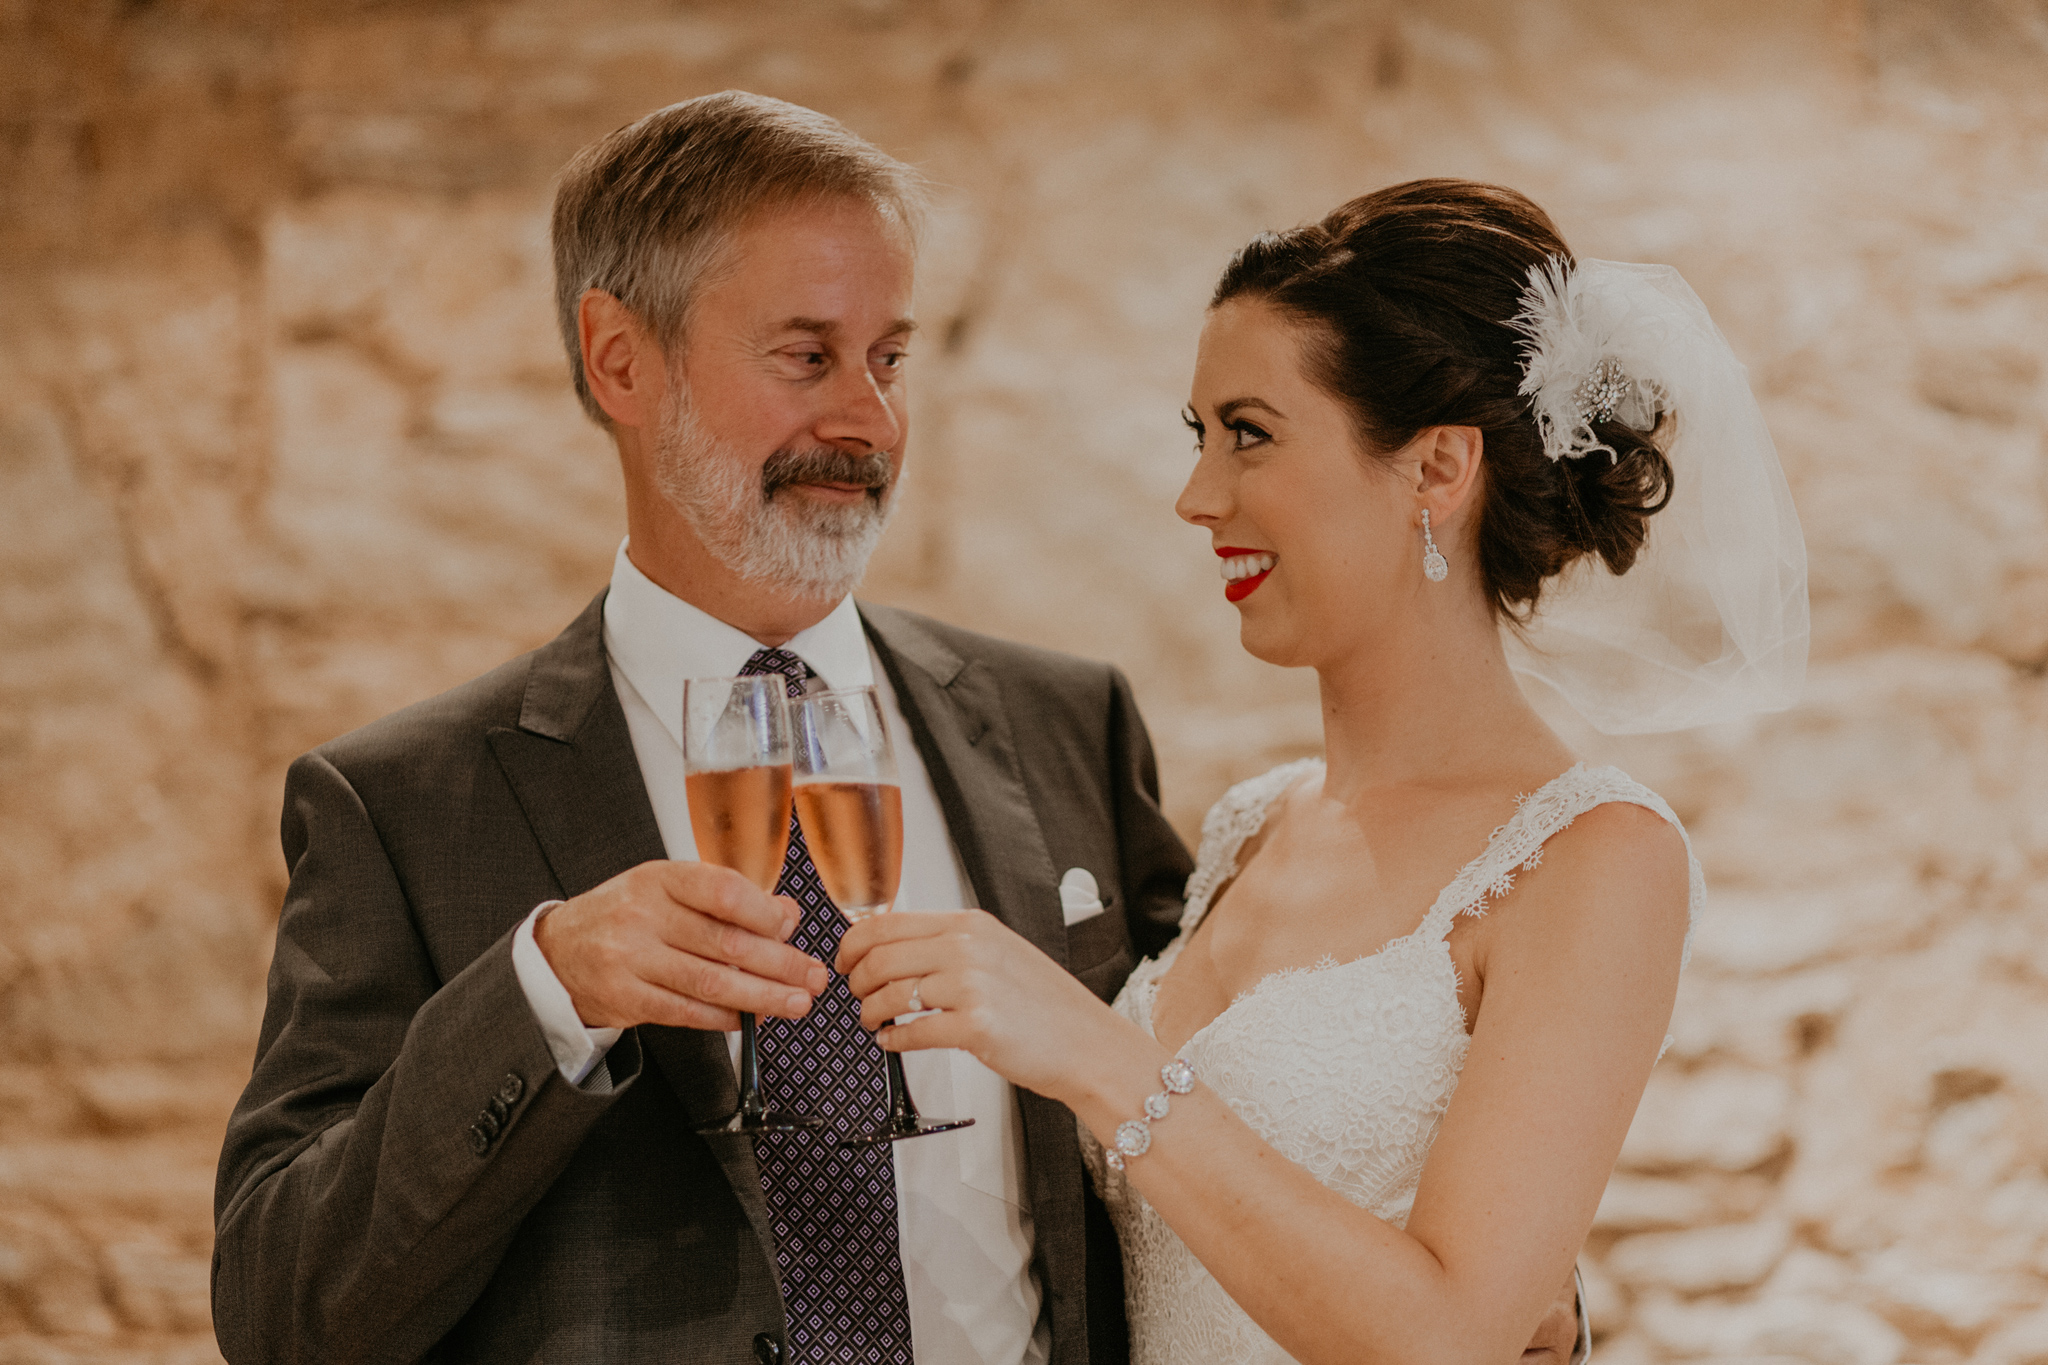 Father of the bride toasts bride during getting ready pictures